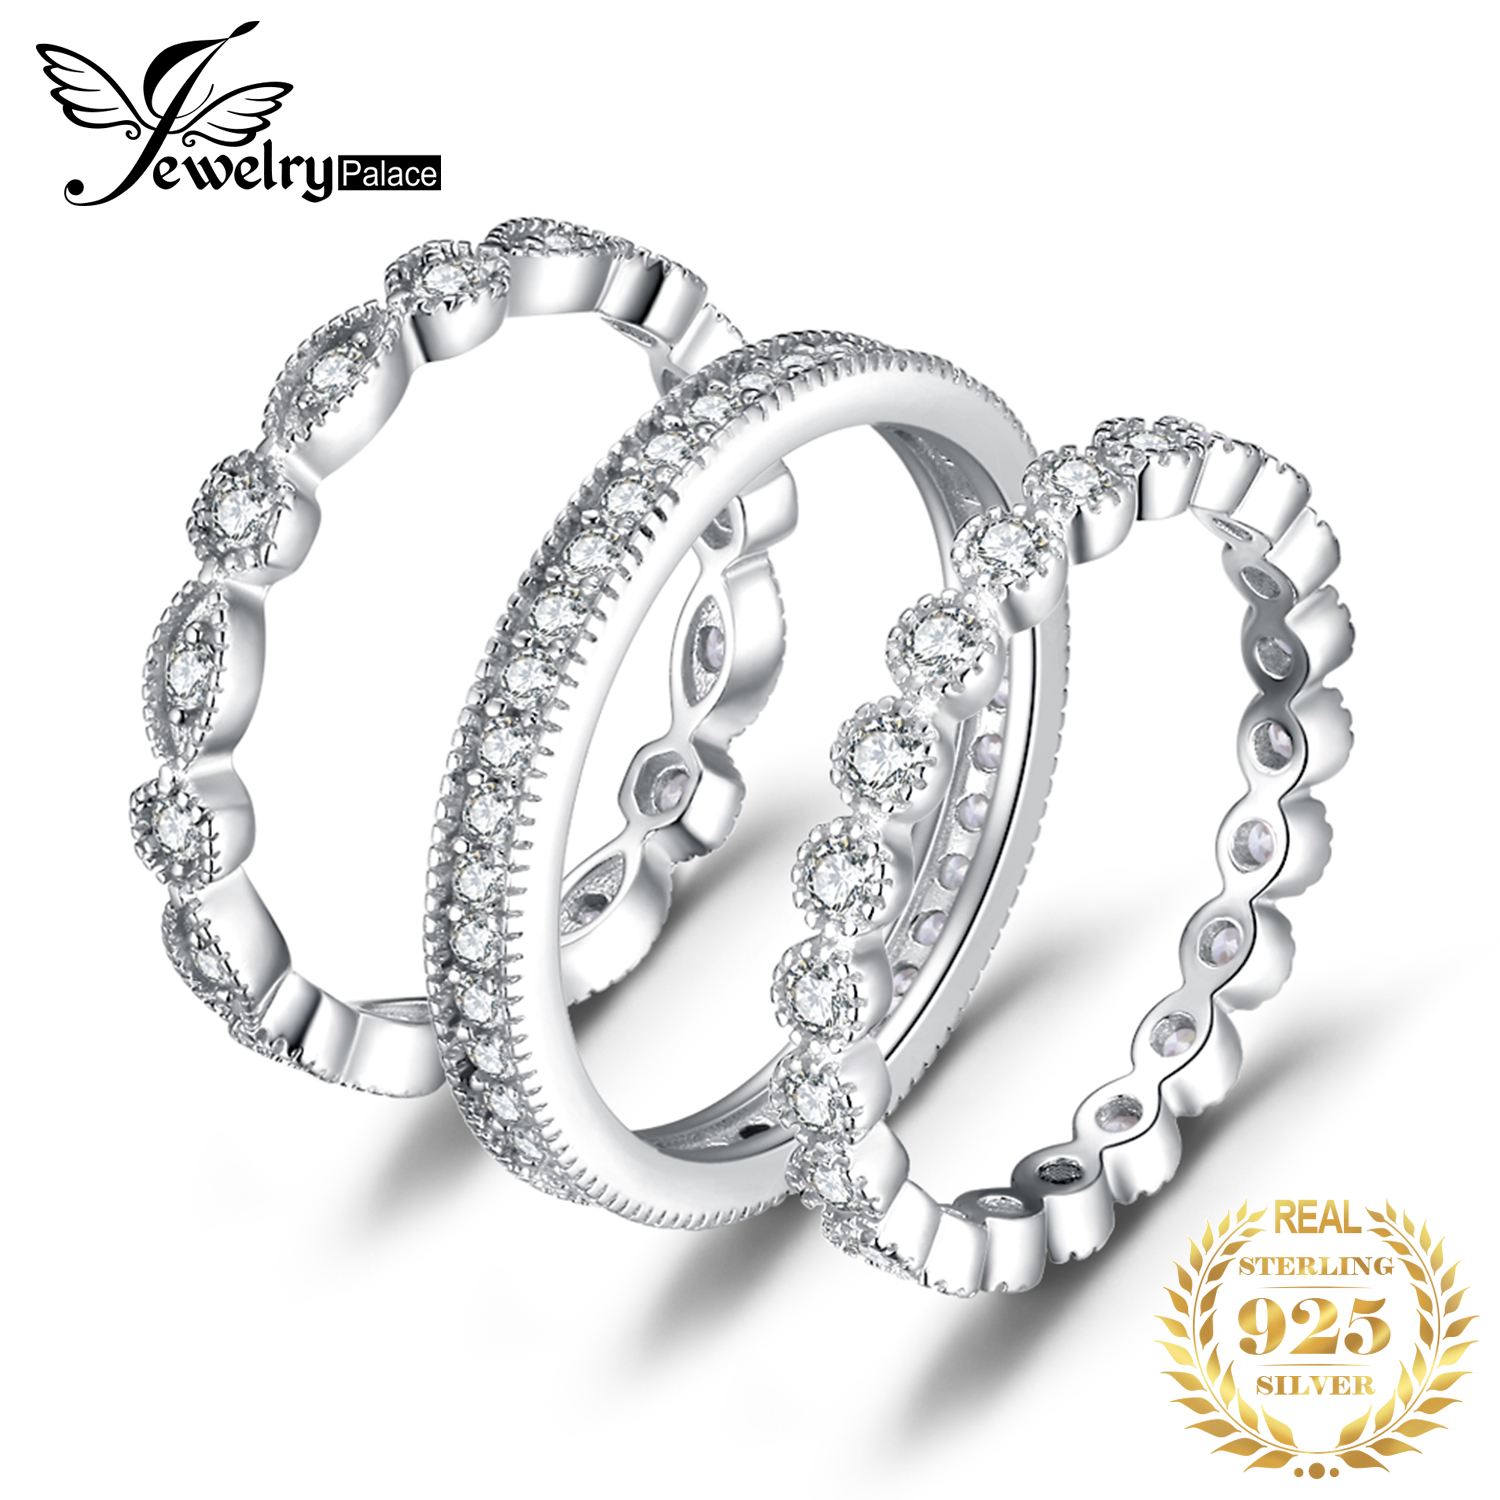 JewelryPalace Fashion 2.15ct Cubic Zirconia 3 Eternity Band prsteny pro ženy Pure 925 Sterling Silver Ring Real Silver Jewelry